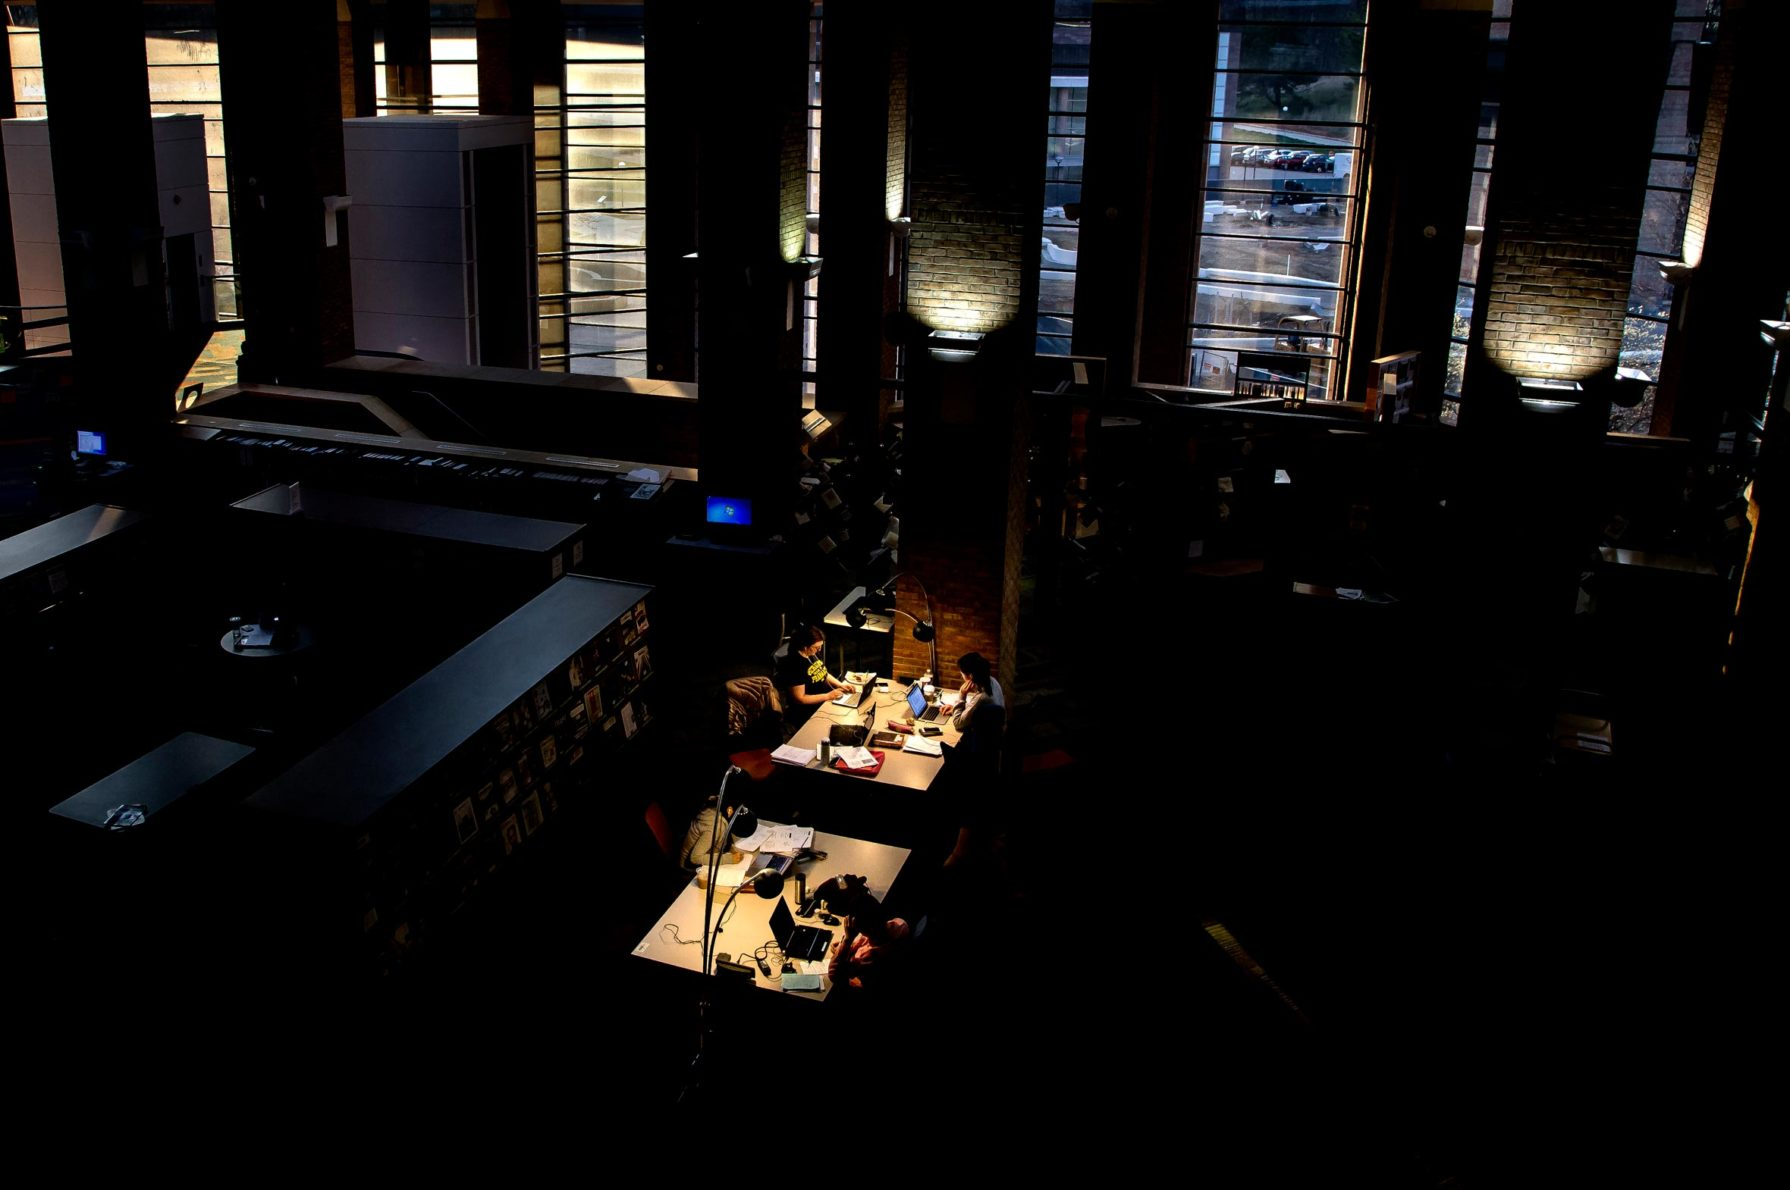 Two desks lit with lamps in a darkened study center. Students study and fall asleep on the desks.